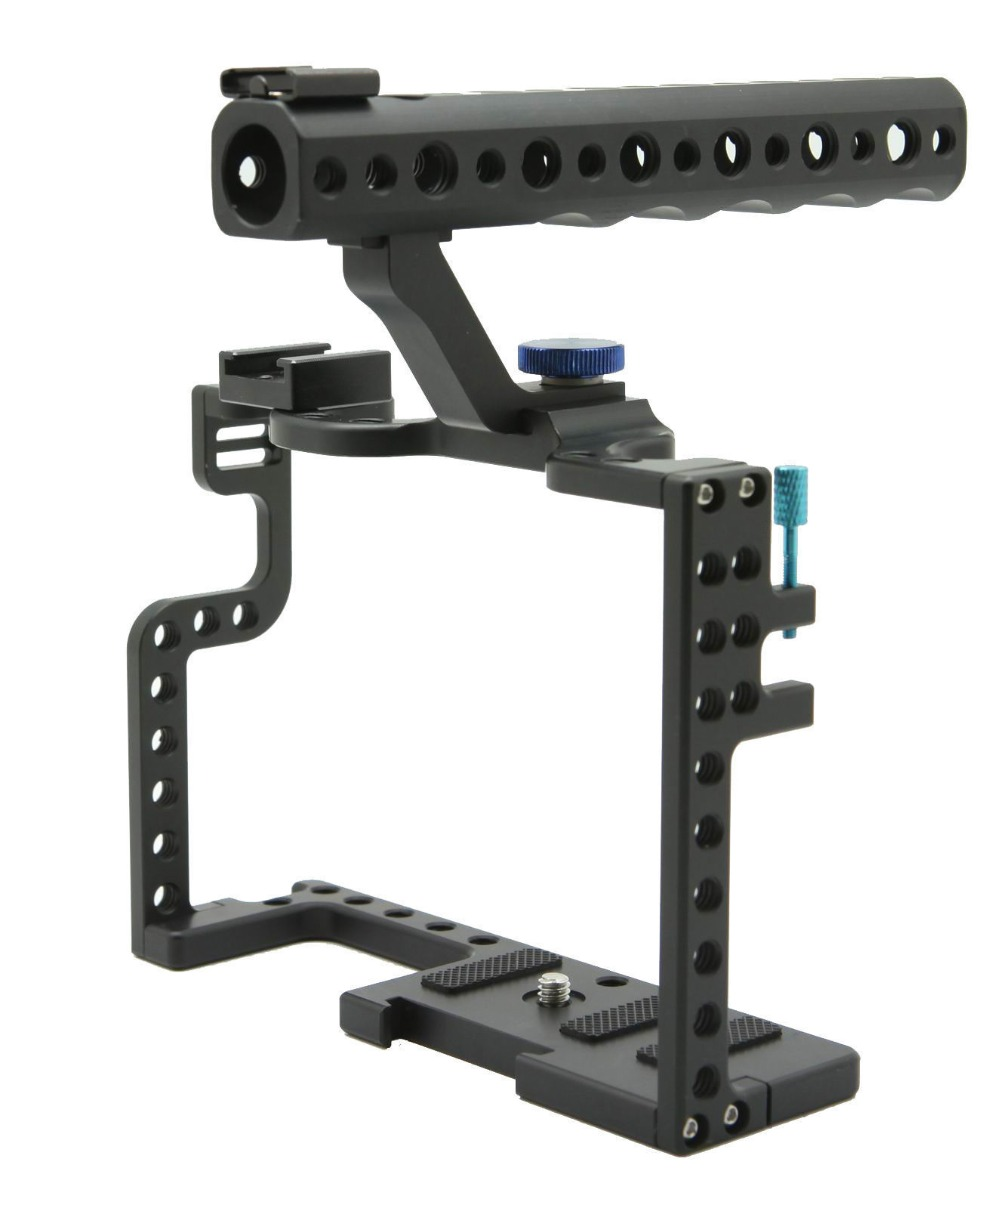 DSLR Camera Cage With Top Handle Grip For Panasonic Lumix GH5 Camera Rig taste taste live at the isle of wight festival 1970 2 lp